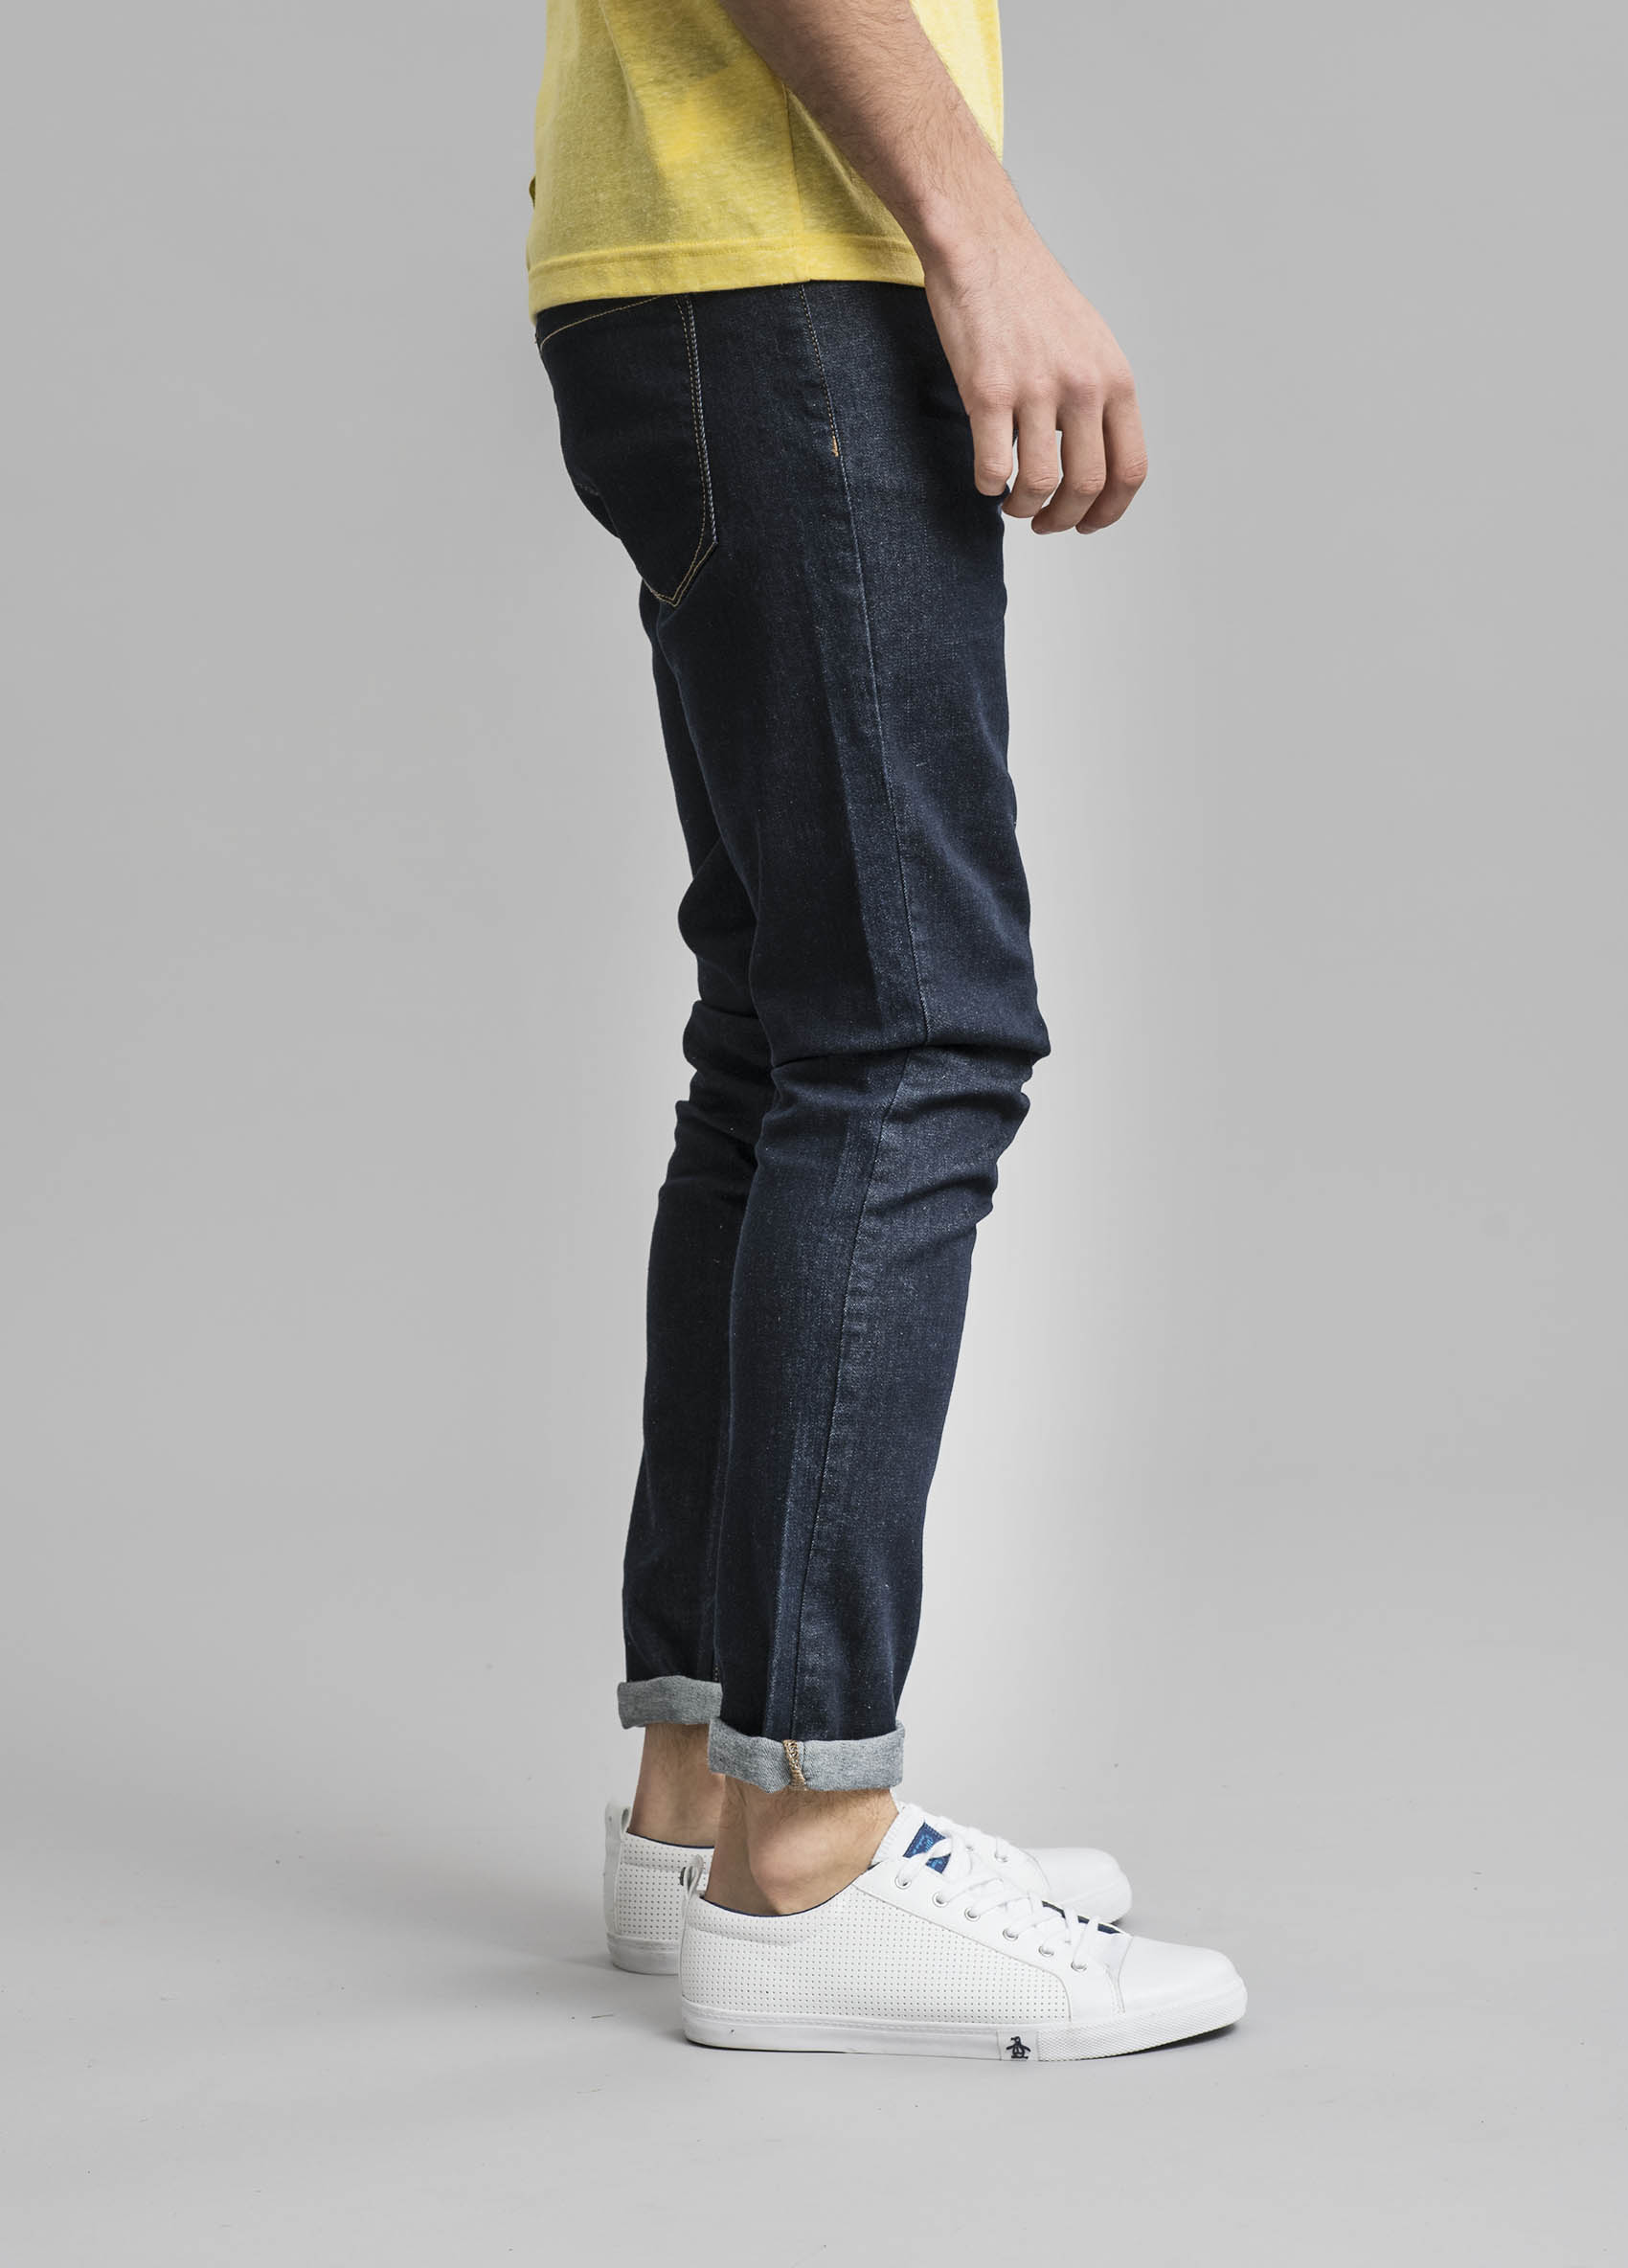 penguin_5-pkt-denim-skinny_54-13-2020__picture-11575